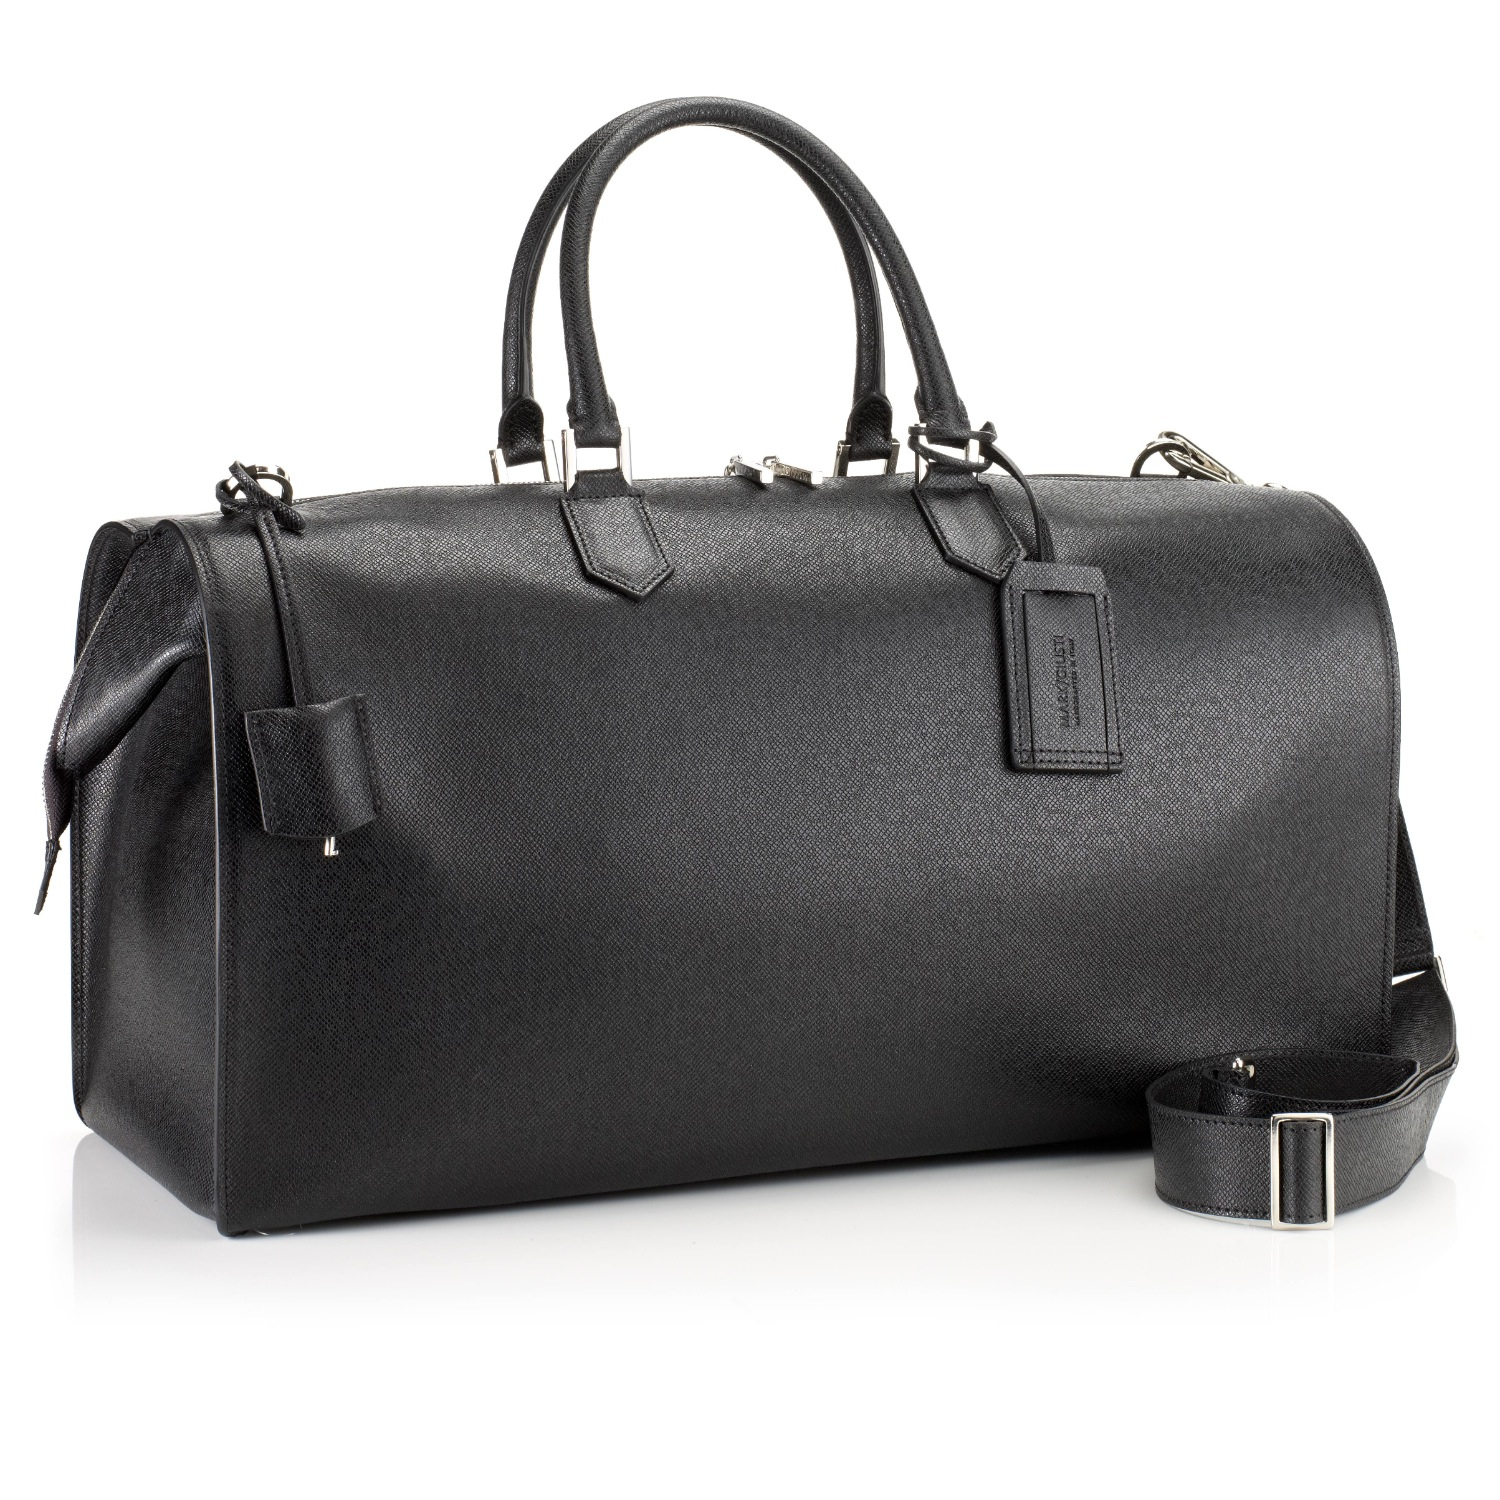 leather weekend bags for men - photo #49